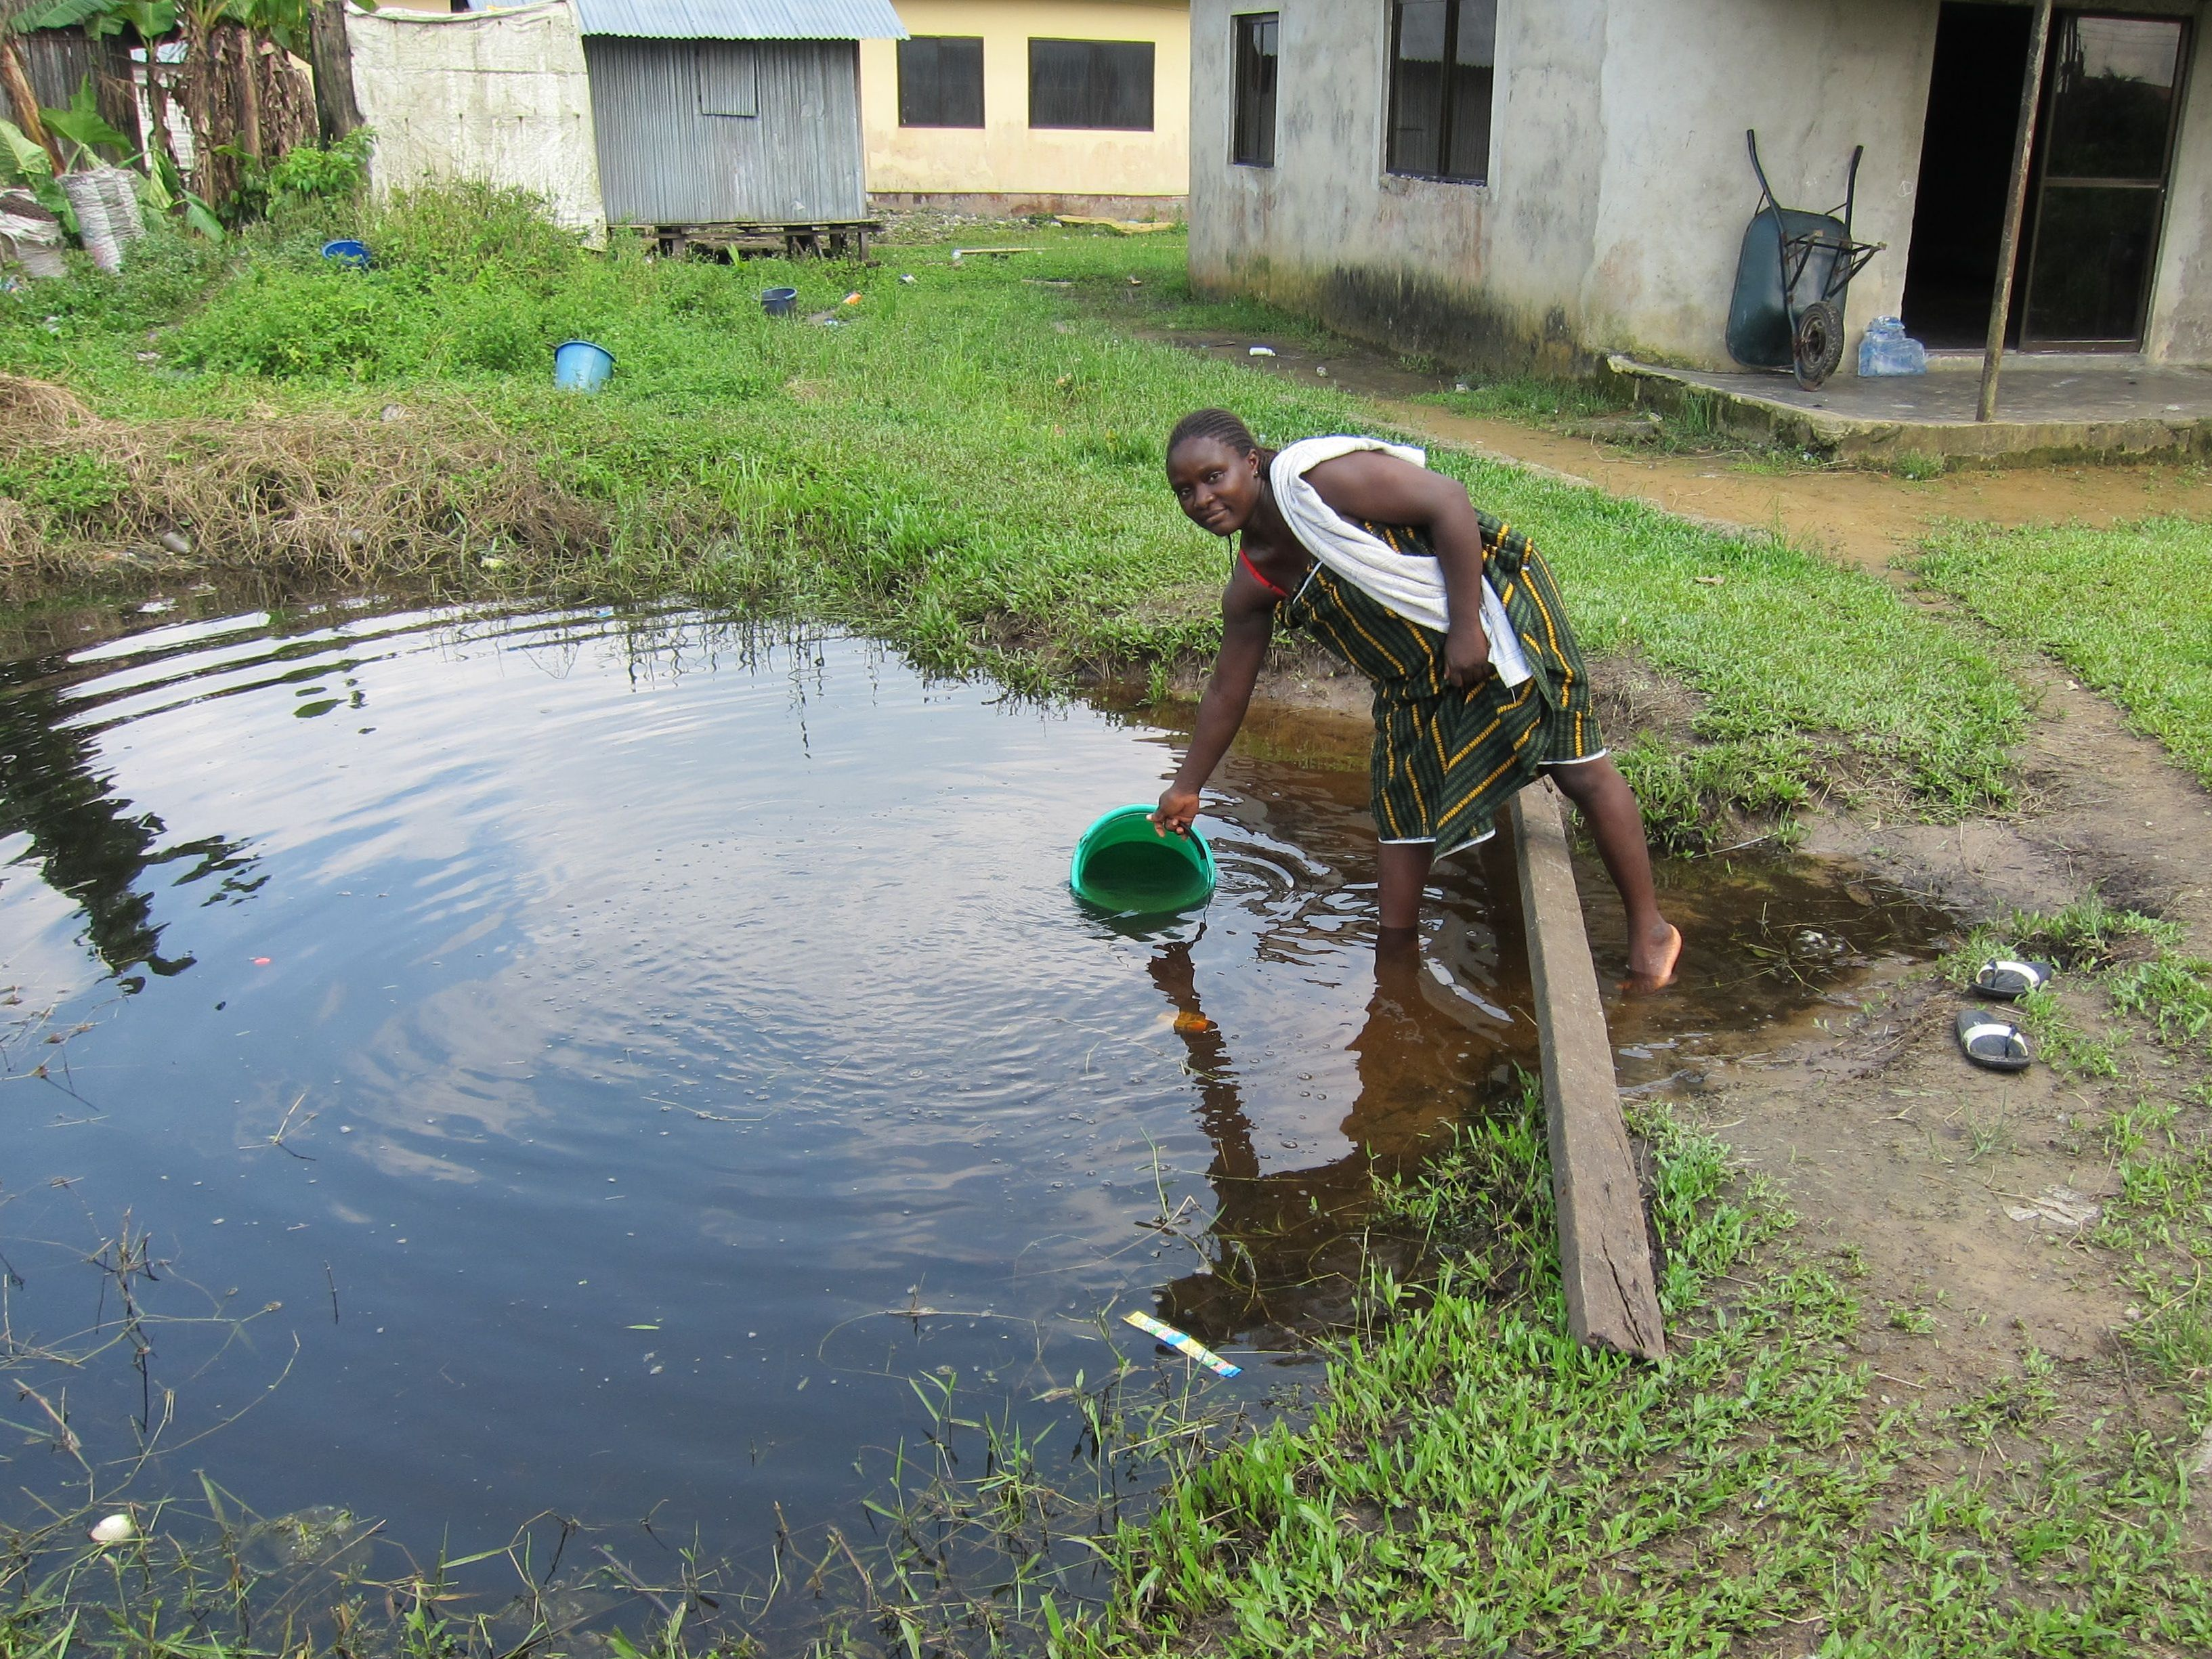 In Delta State's Oporoza community people say they still need development, including access to clean water